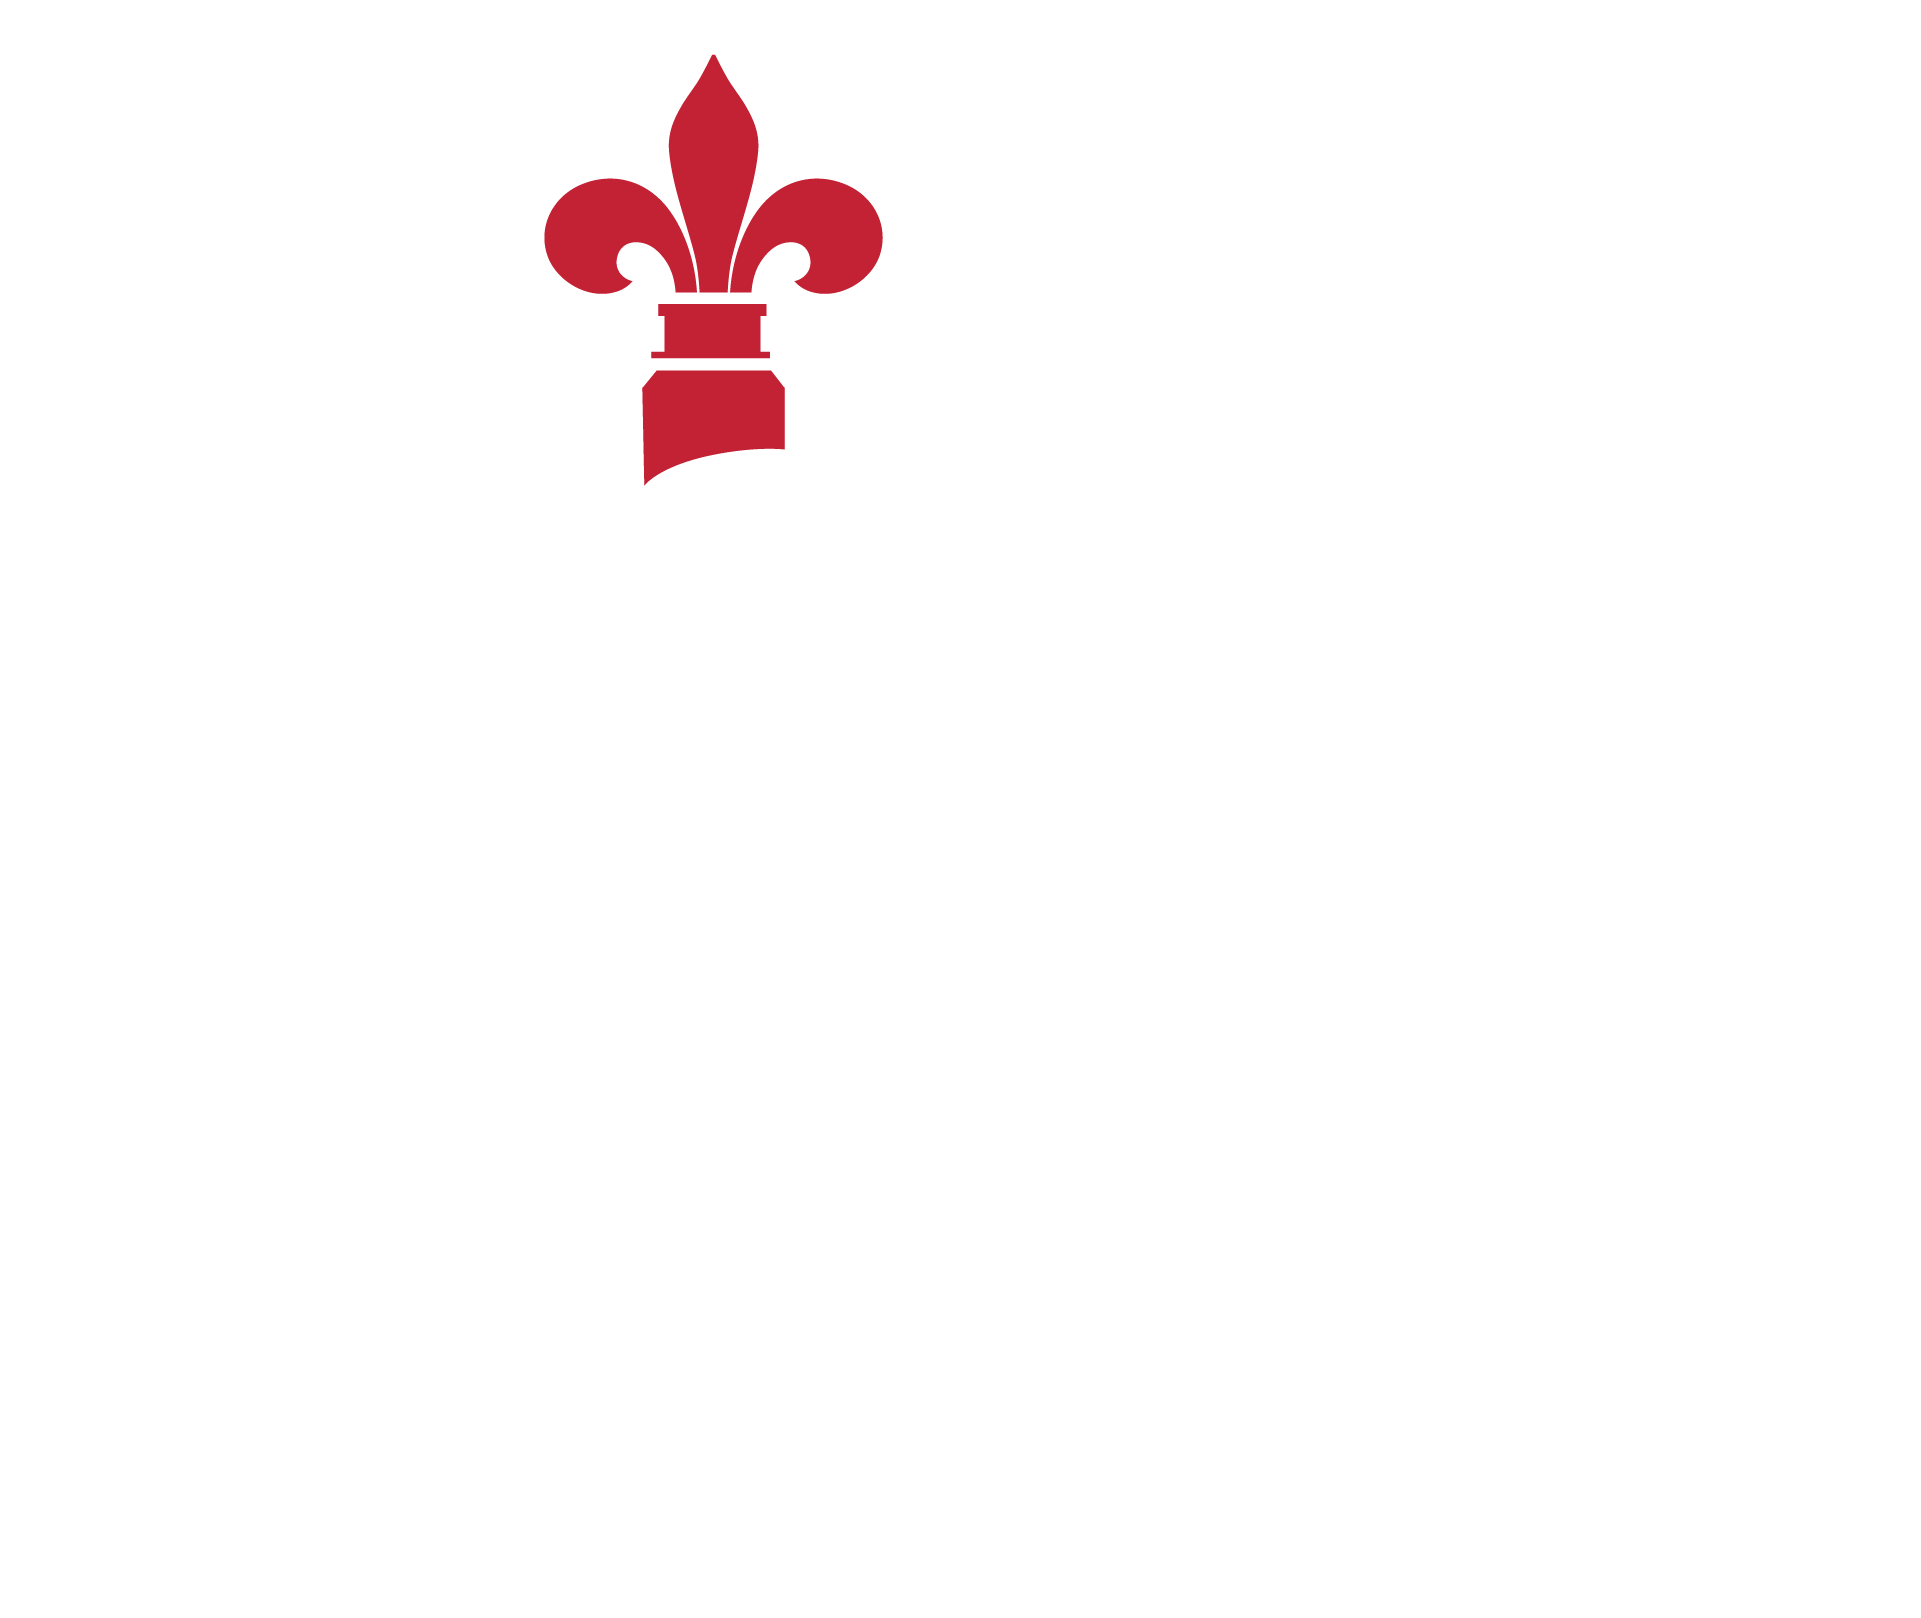 Bank Officers - Mobile Banking - My City Bank - Natchitoches, La